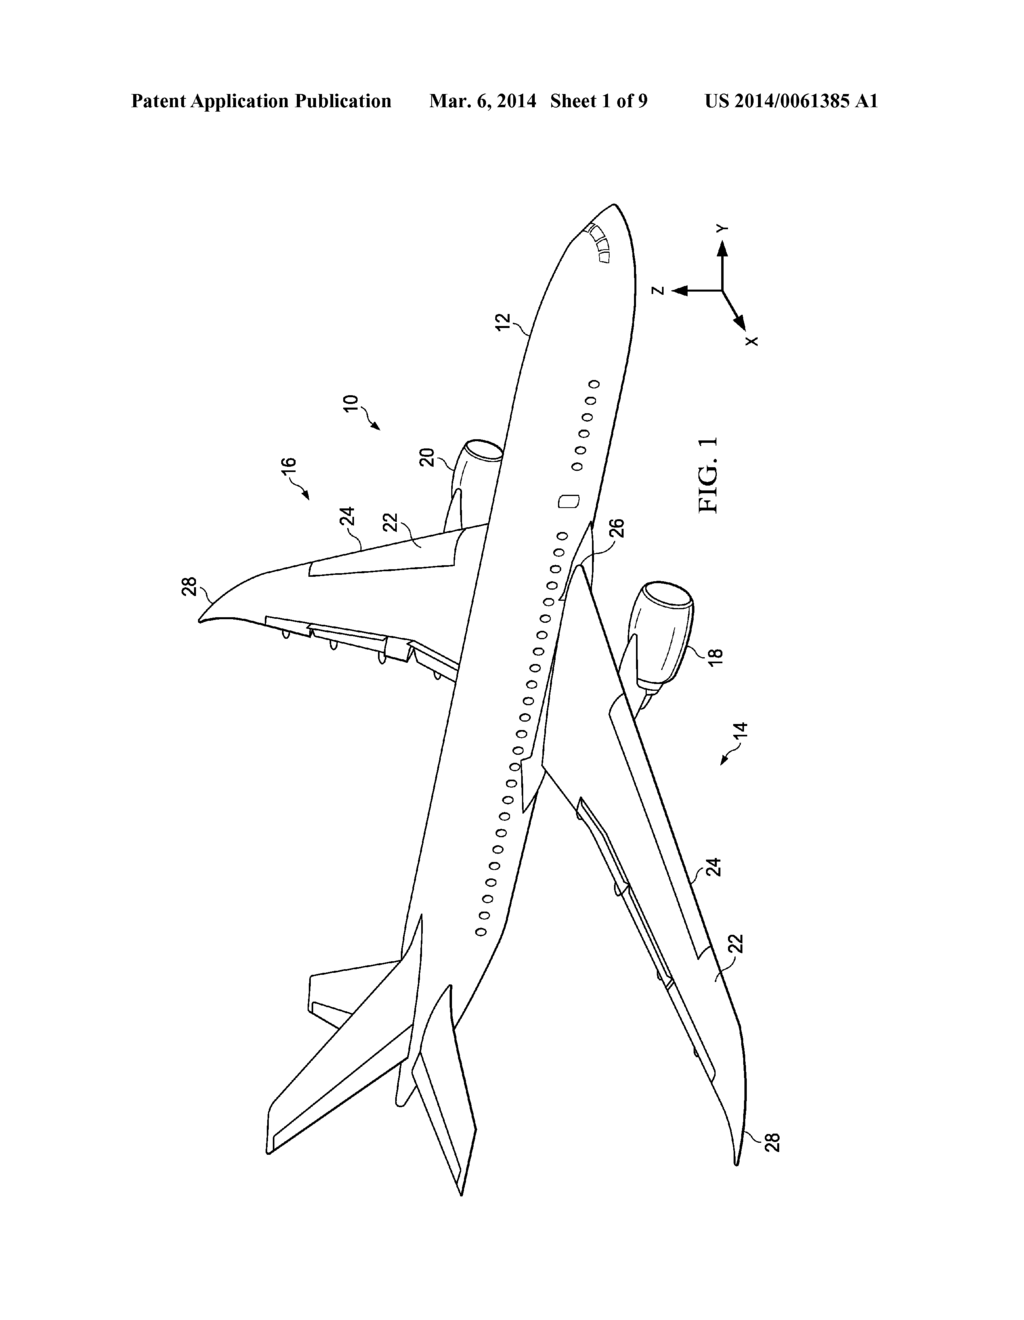 Bonded Composite Aircraft Wing Diagram Schematic And Image 02 Airplane